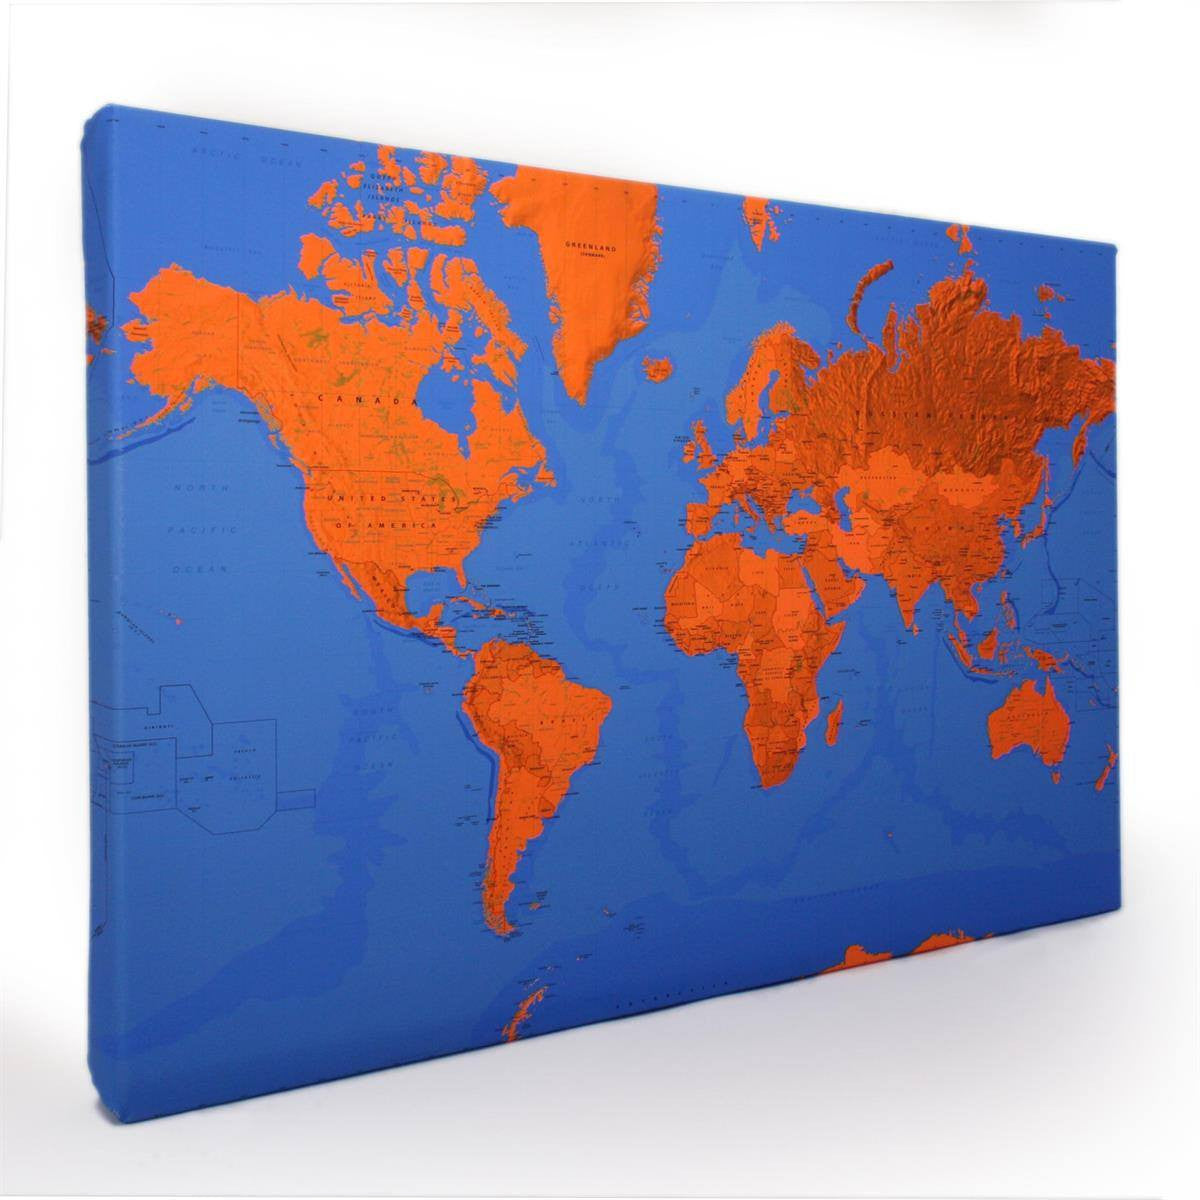 Image of Duo-tone Canvas World Wall Maps